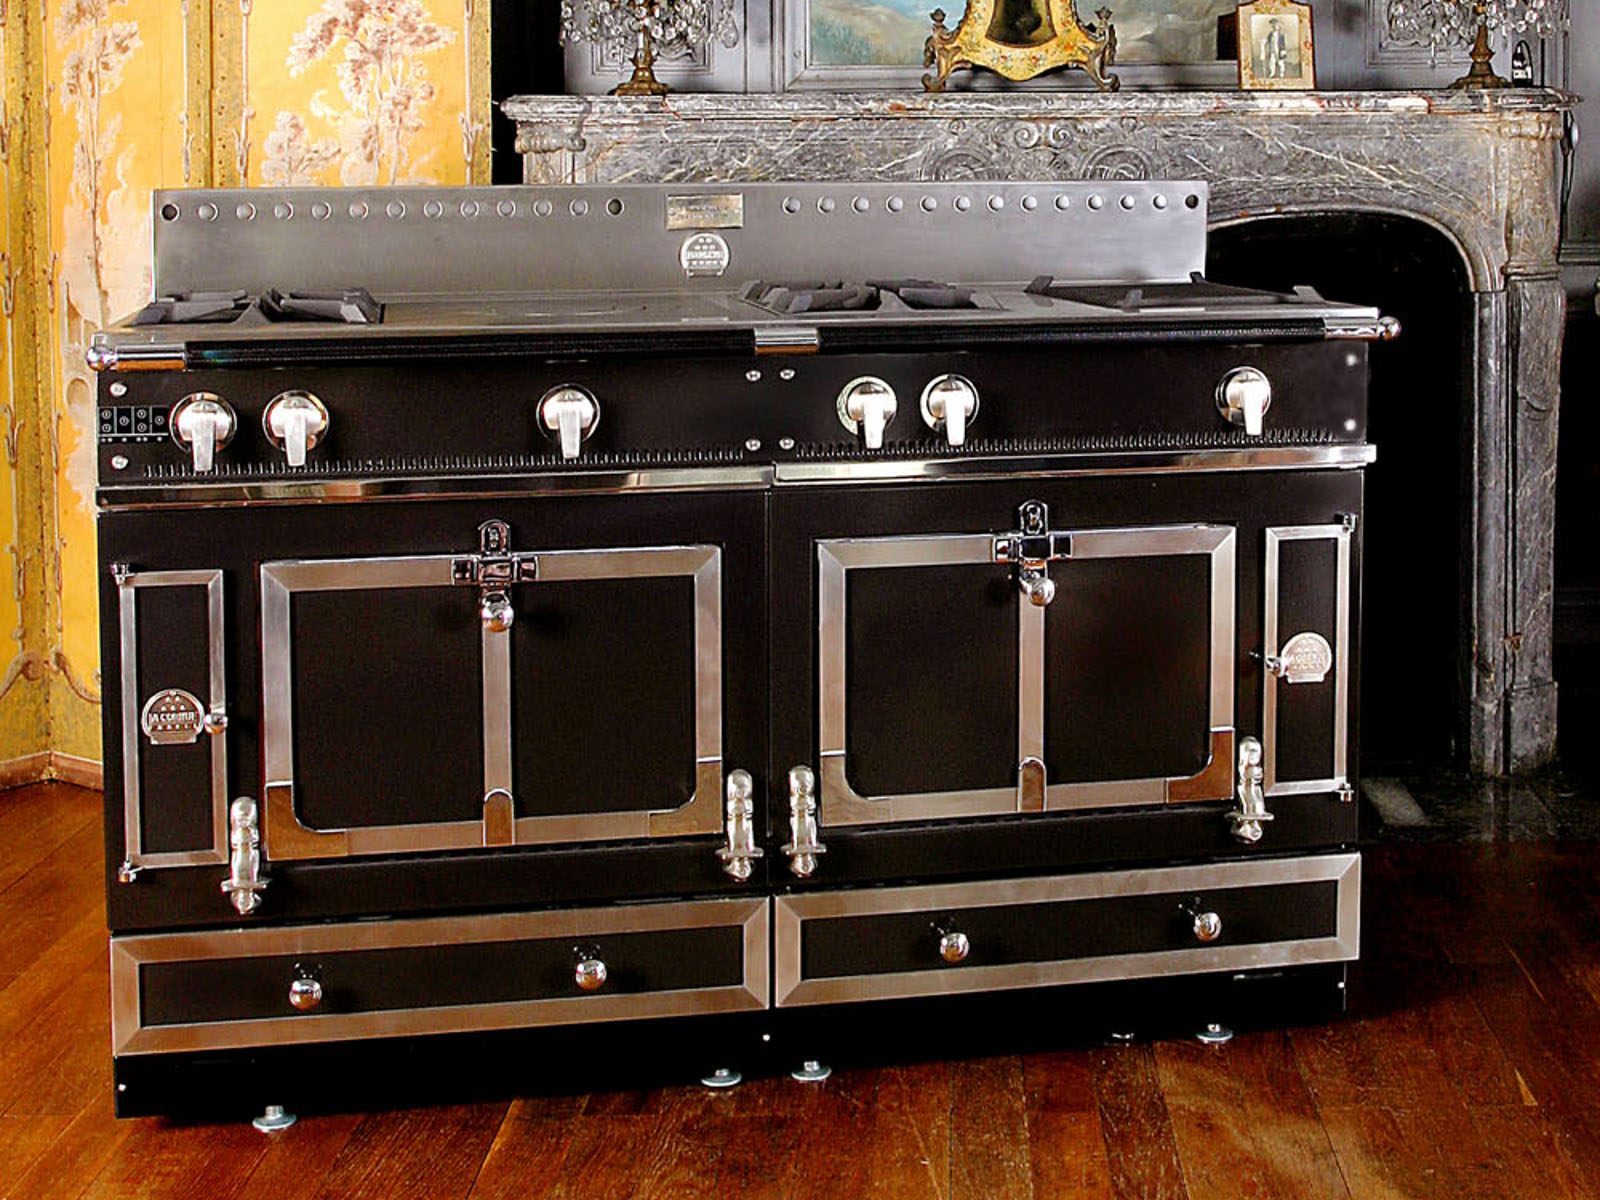 La Cornue Herd Stainless Steel Cooker ChÂteau 150 By La Cornue